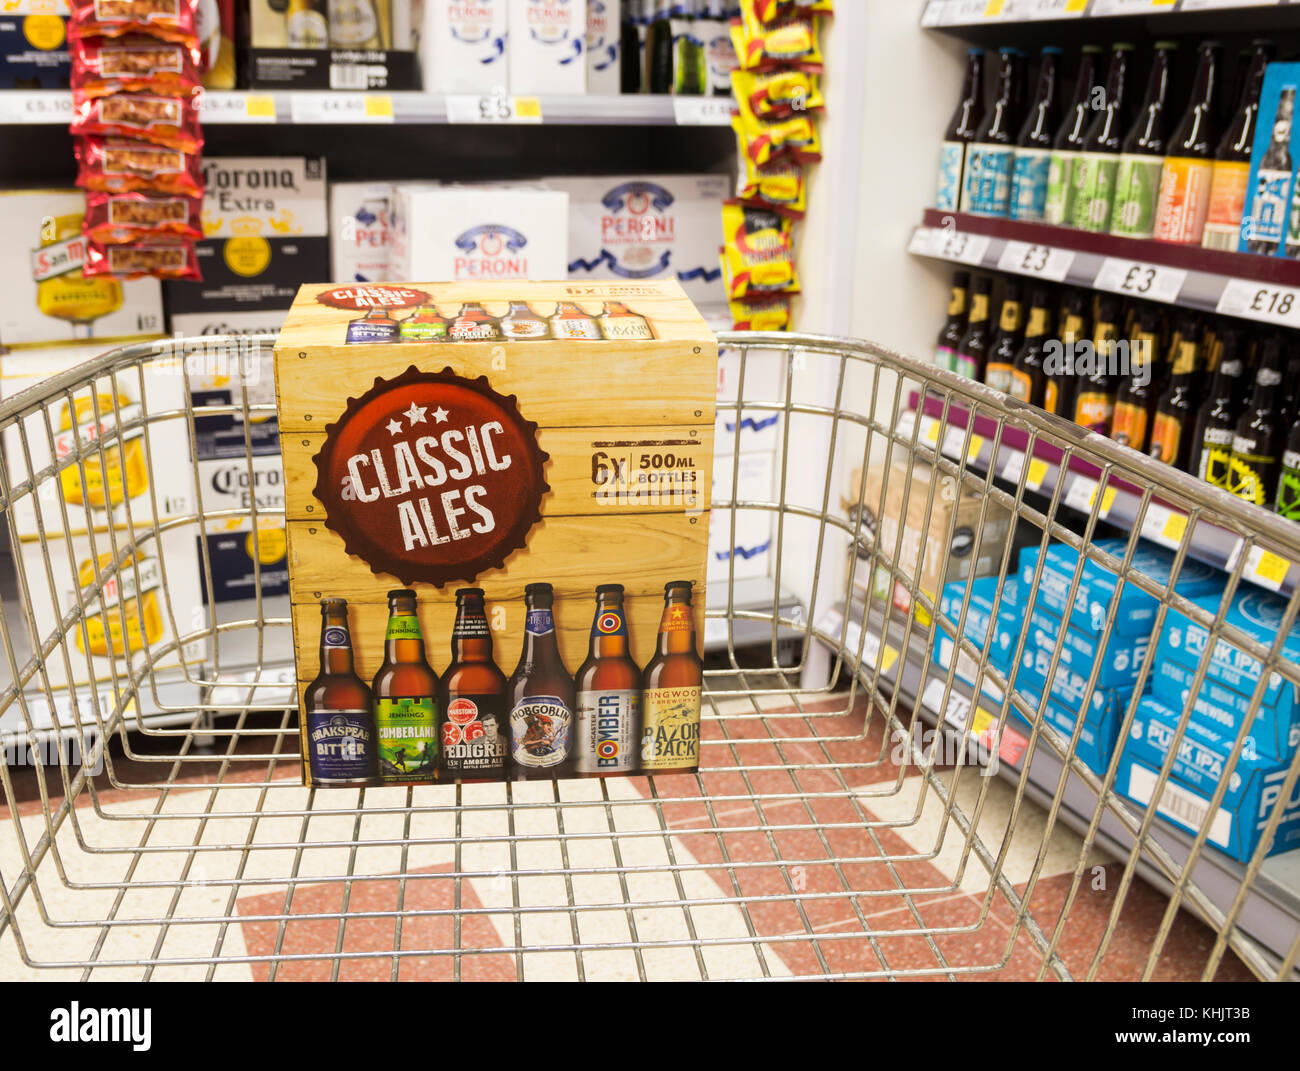 Craft beer/Classic Ales in supermarket trolley in Tesco supermarket .UK - Stock Image